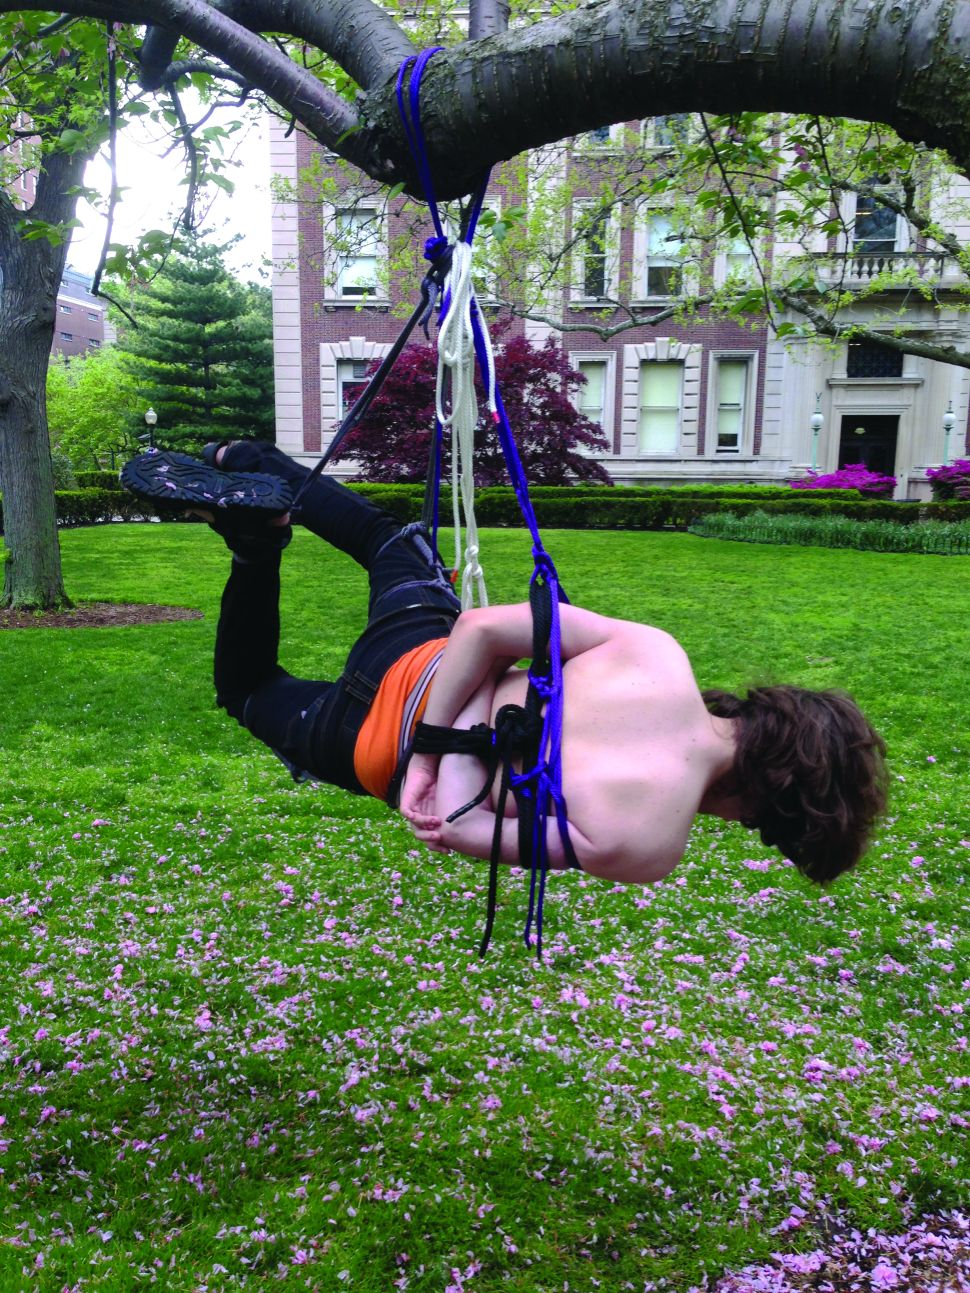 50 Shades of Ivy: Kink on Campus